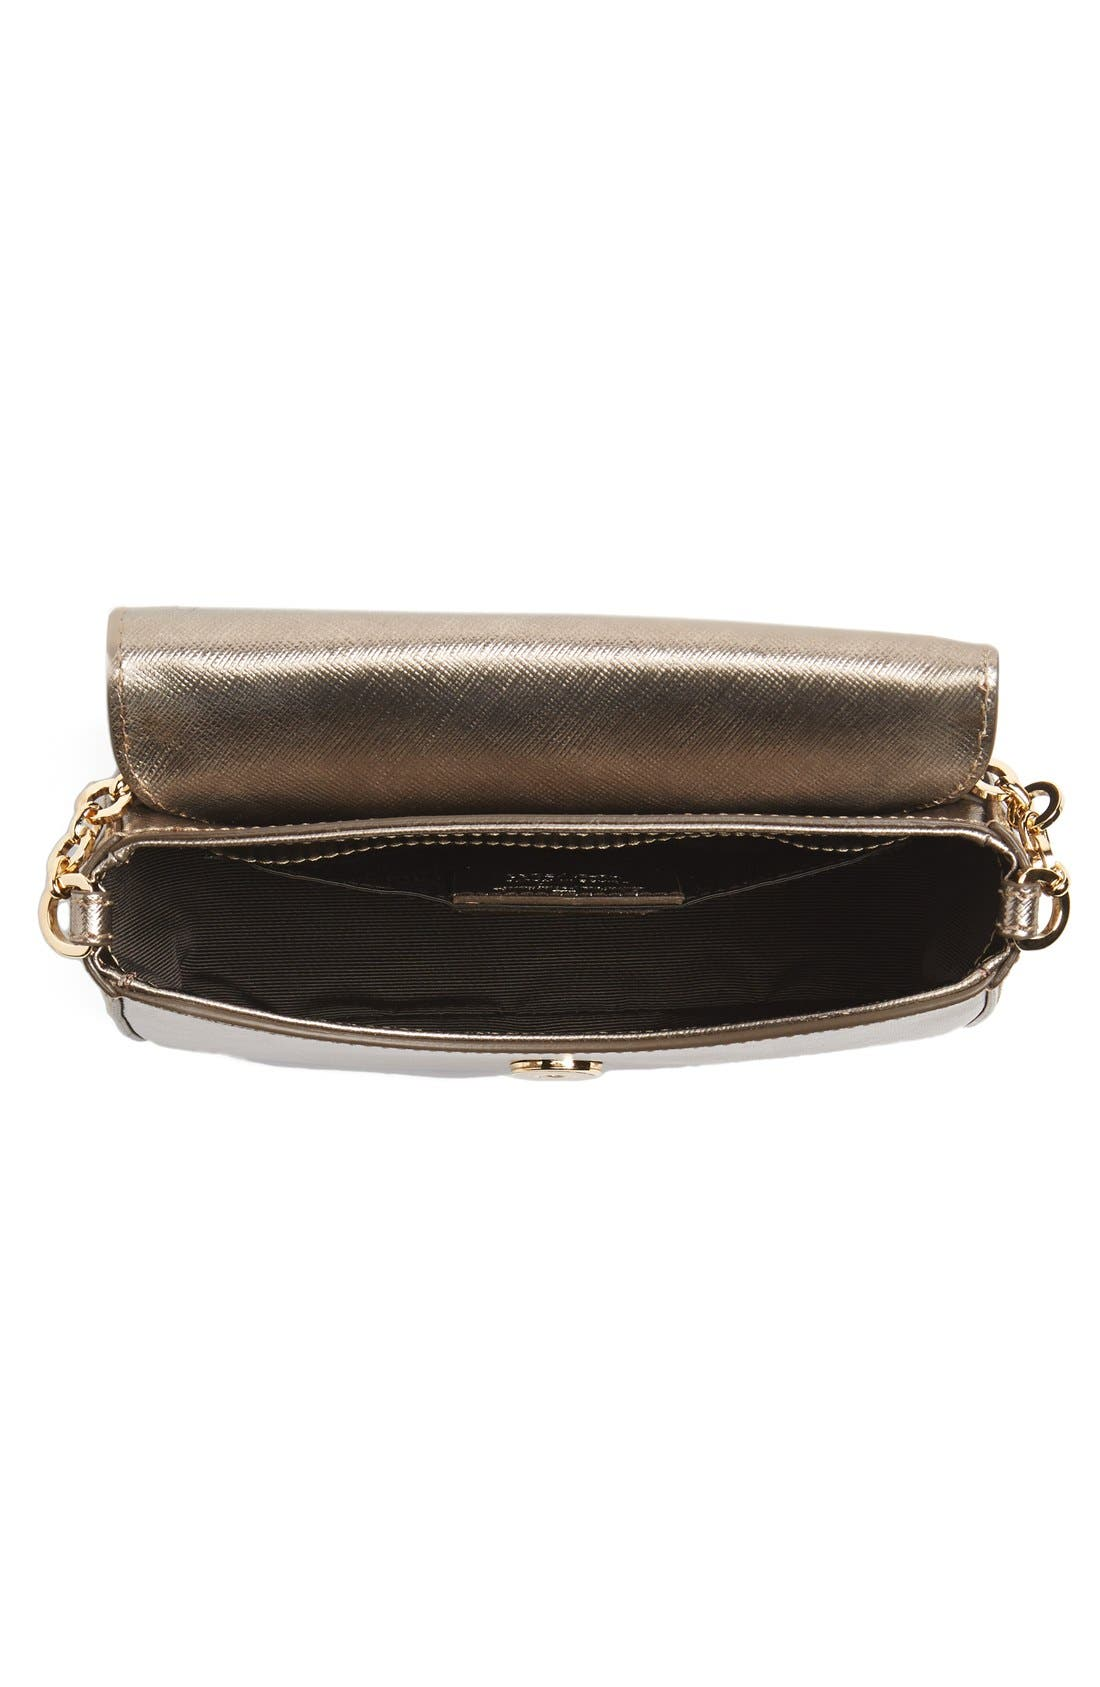 Alternate Image 3  - Salvatore Ferragamo 'Paris Chain' Saffiano Leather Shoulder Bag